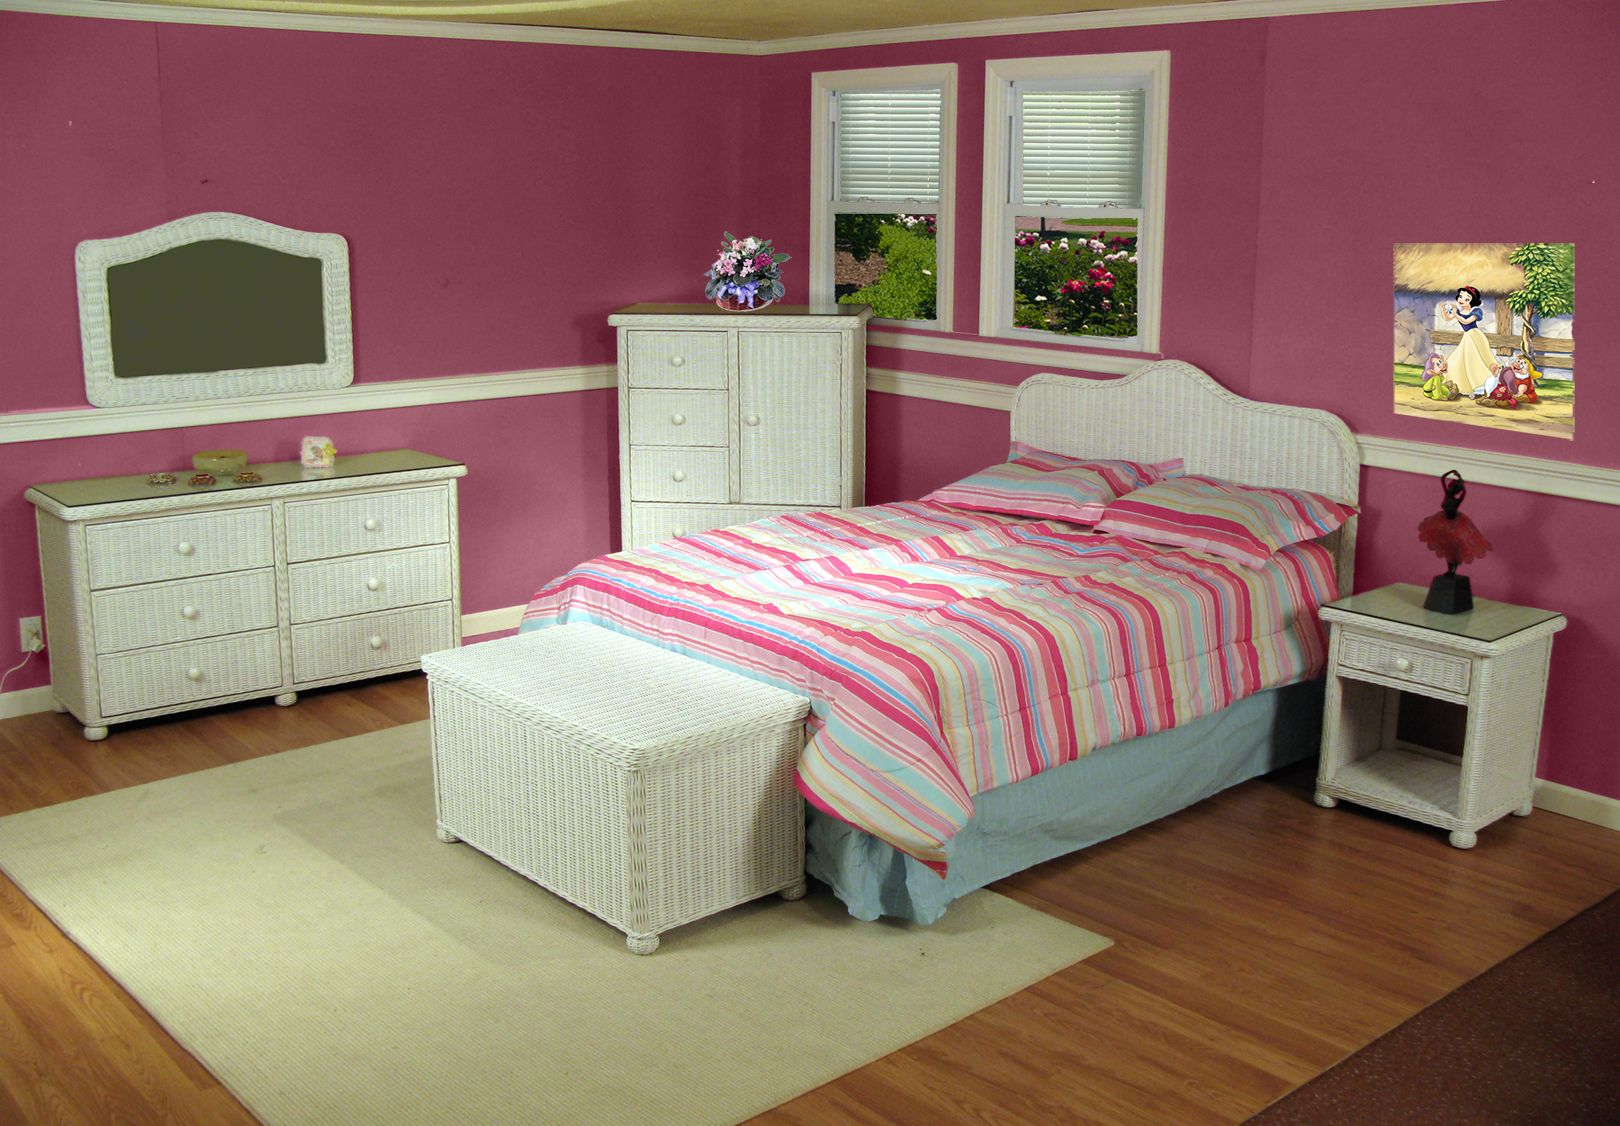 Bedroom Wicker Furniture Elana Classic Bedroom Set White Wicker